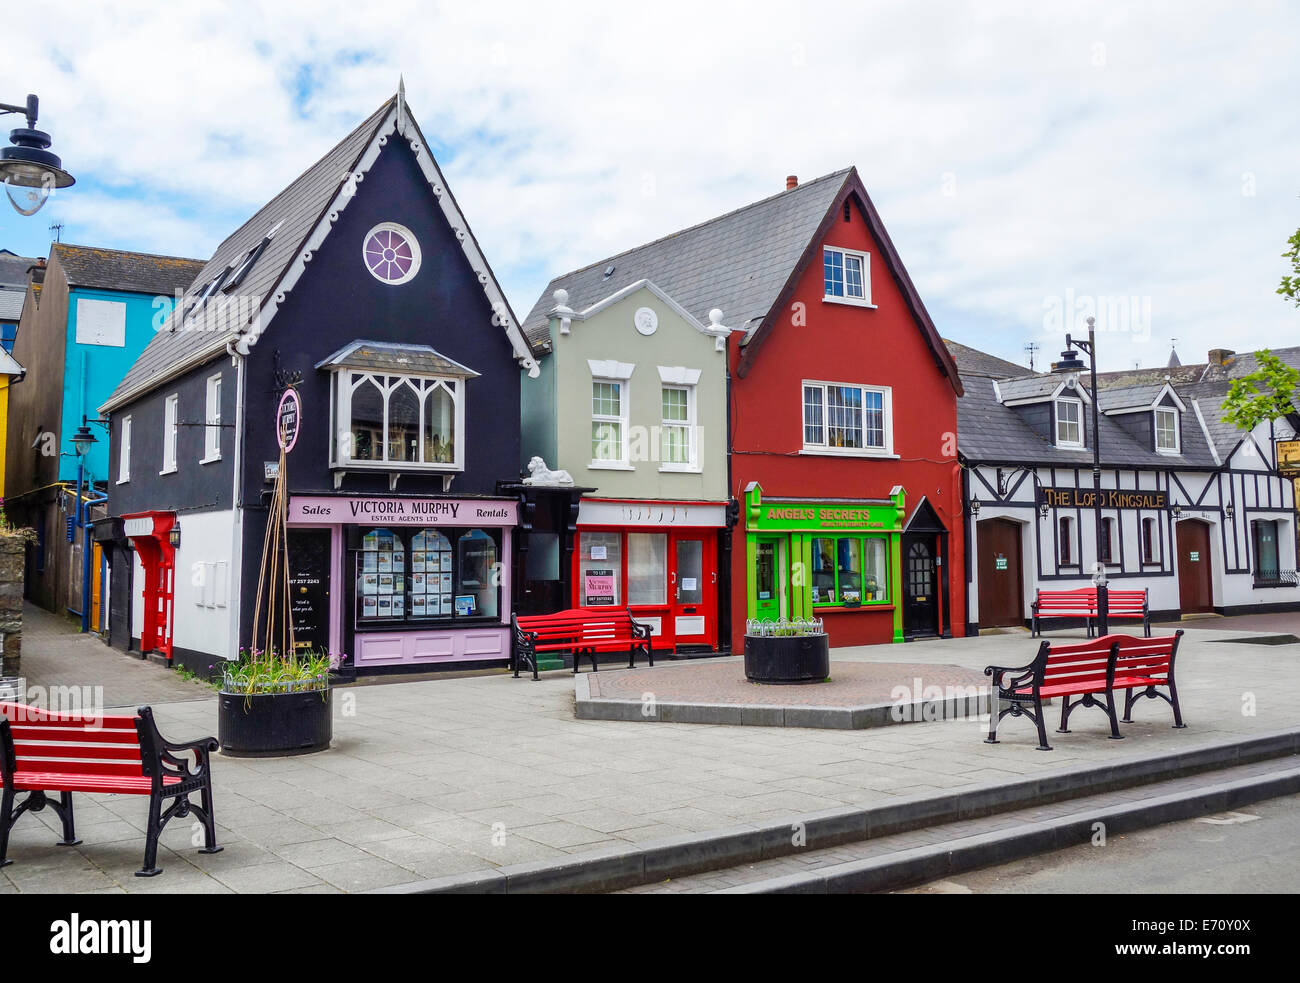 Awe Inspiring Kinsale County Cork Ireland Stock Photo 73165258 Alamy Interior Design Ideas Clesiryabchikinfo